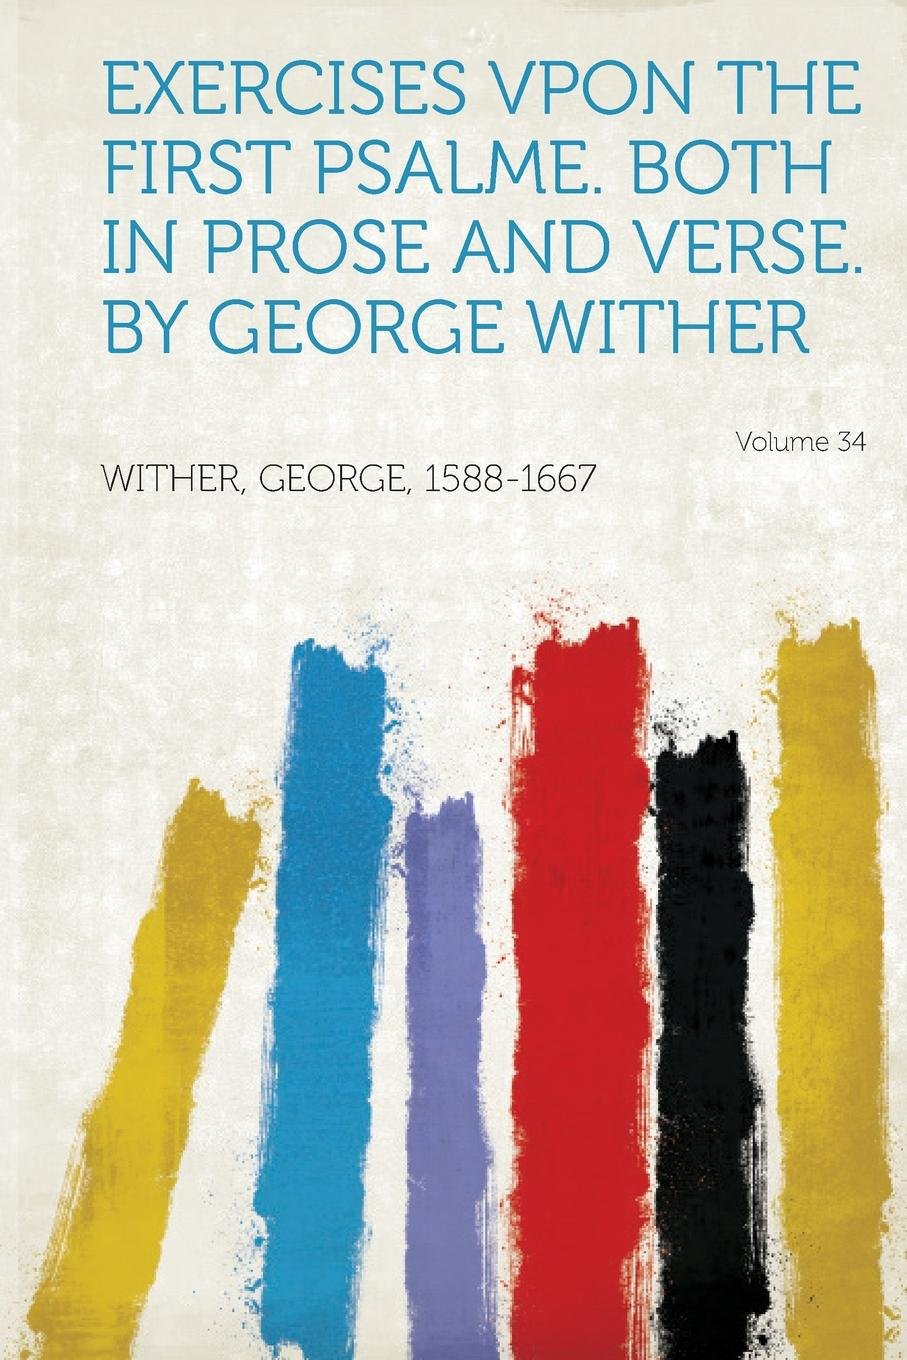 Exercises Vpon the First Psalme. Both in Prose and Verse. by George Wither Volume 34 pdf epub